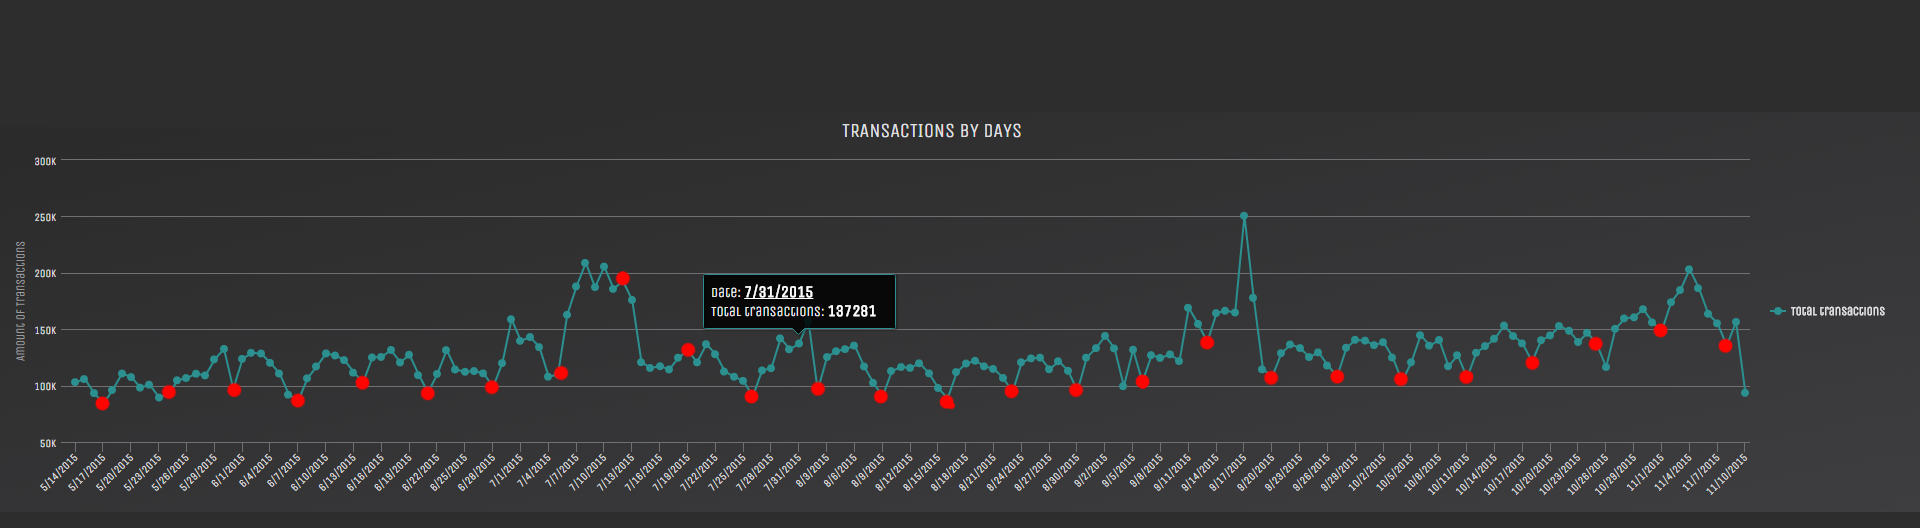 blockchain transactions split by days over the period of the last 180 days